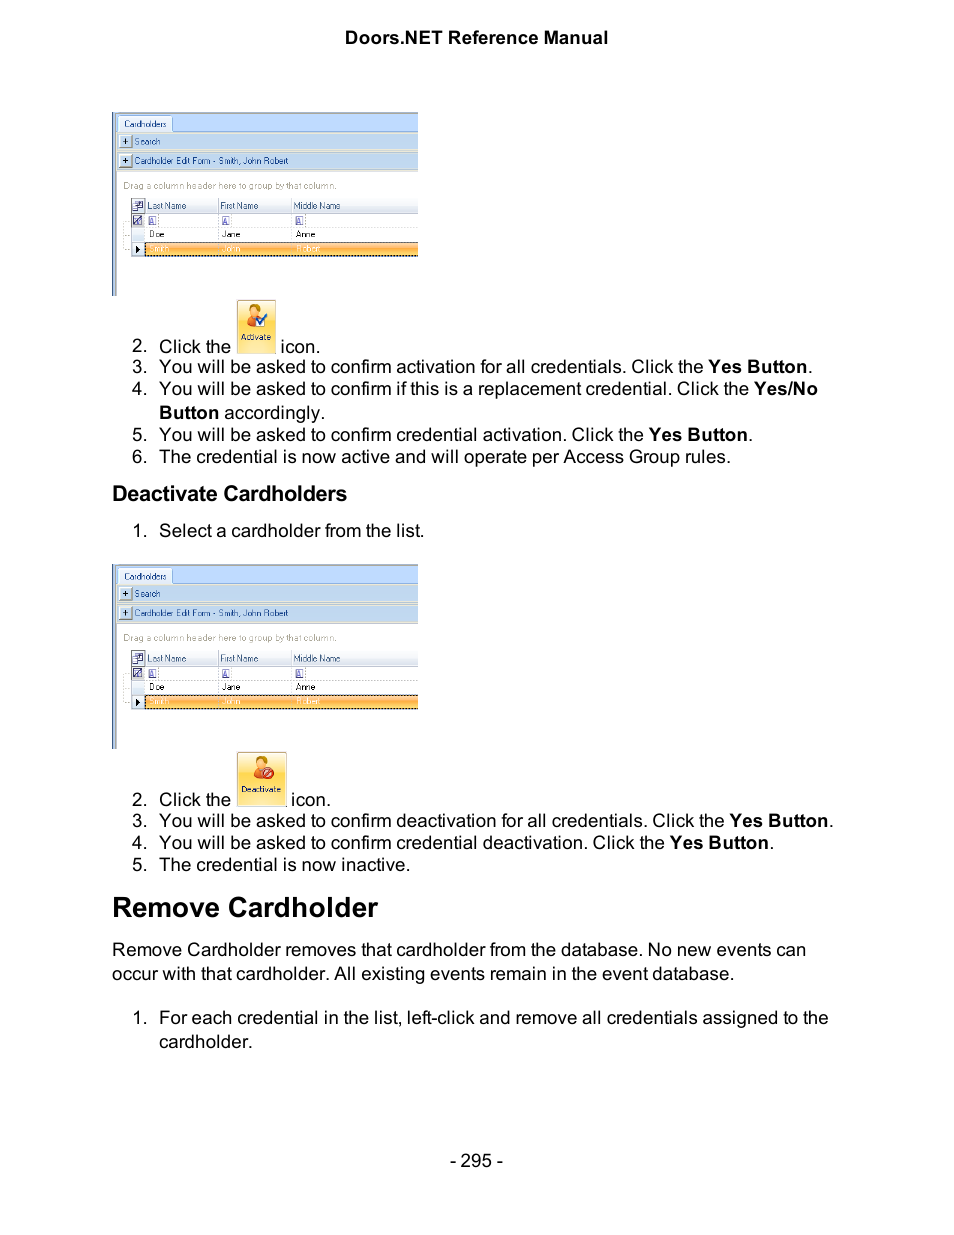 Deactivate cardholders Remove cardholder | Keri Systems Doors.NET Manual User Manual | Page 295